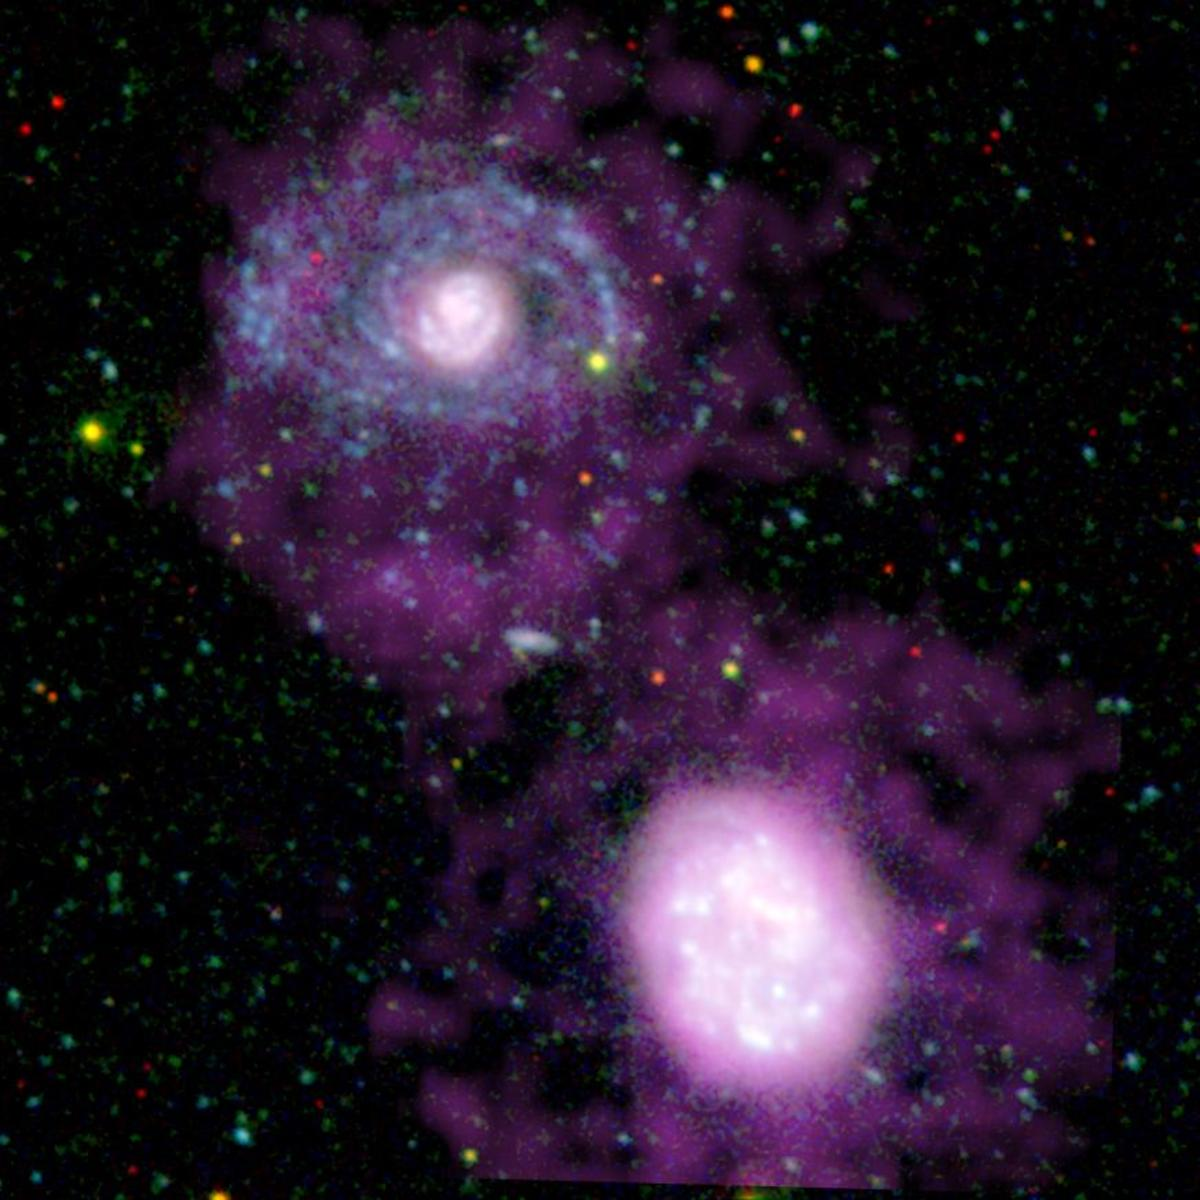 Companion Galaxies. Source: NASA/JPL-Caltech.